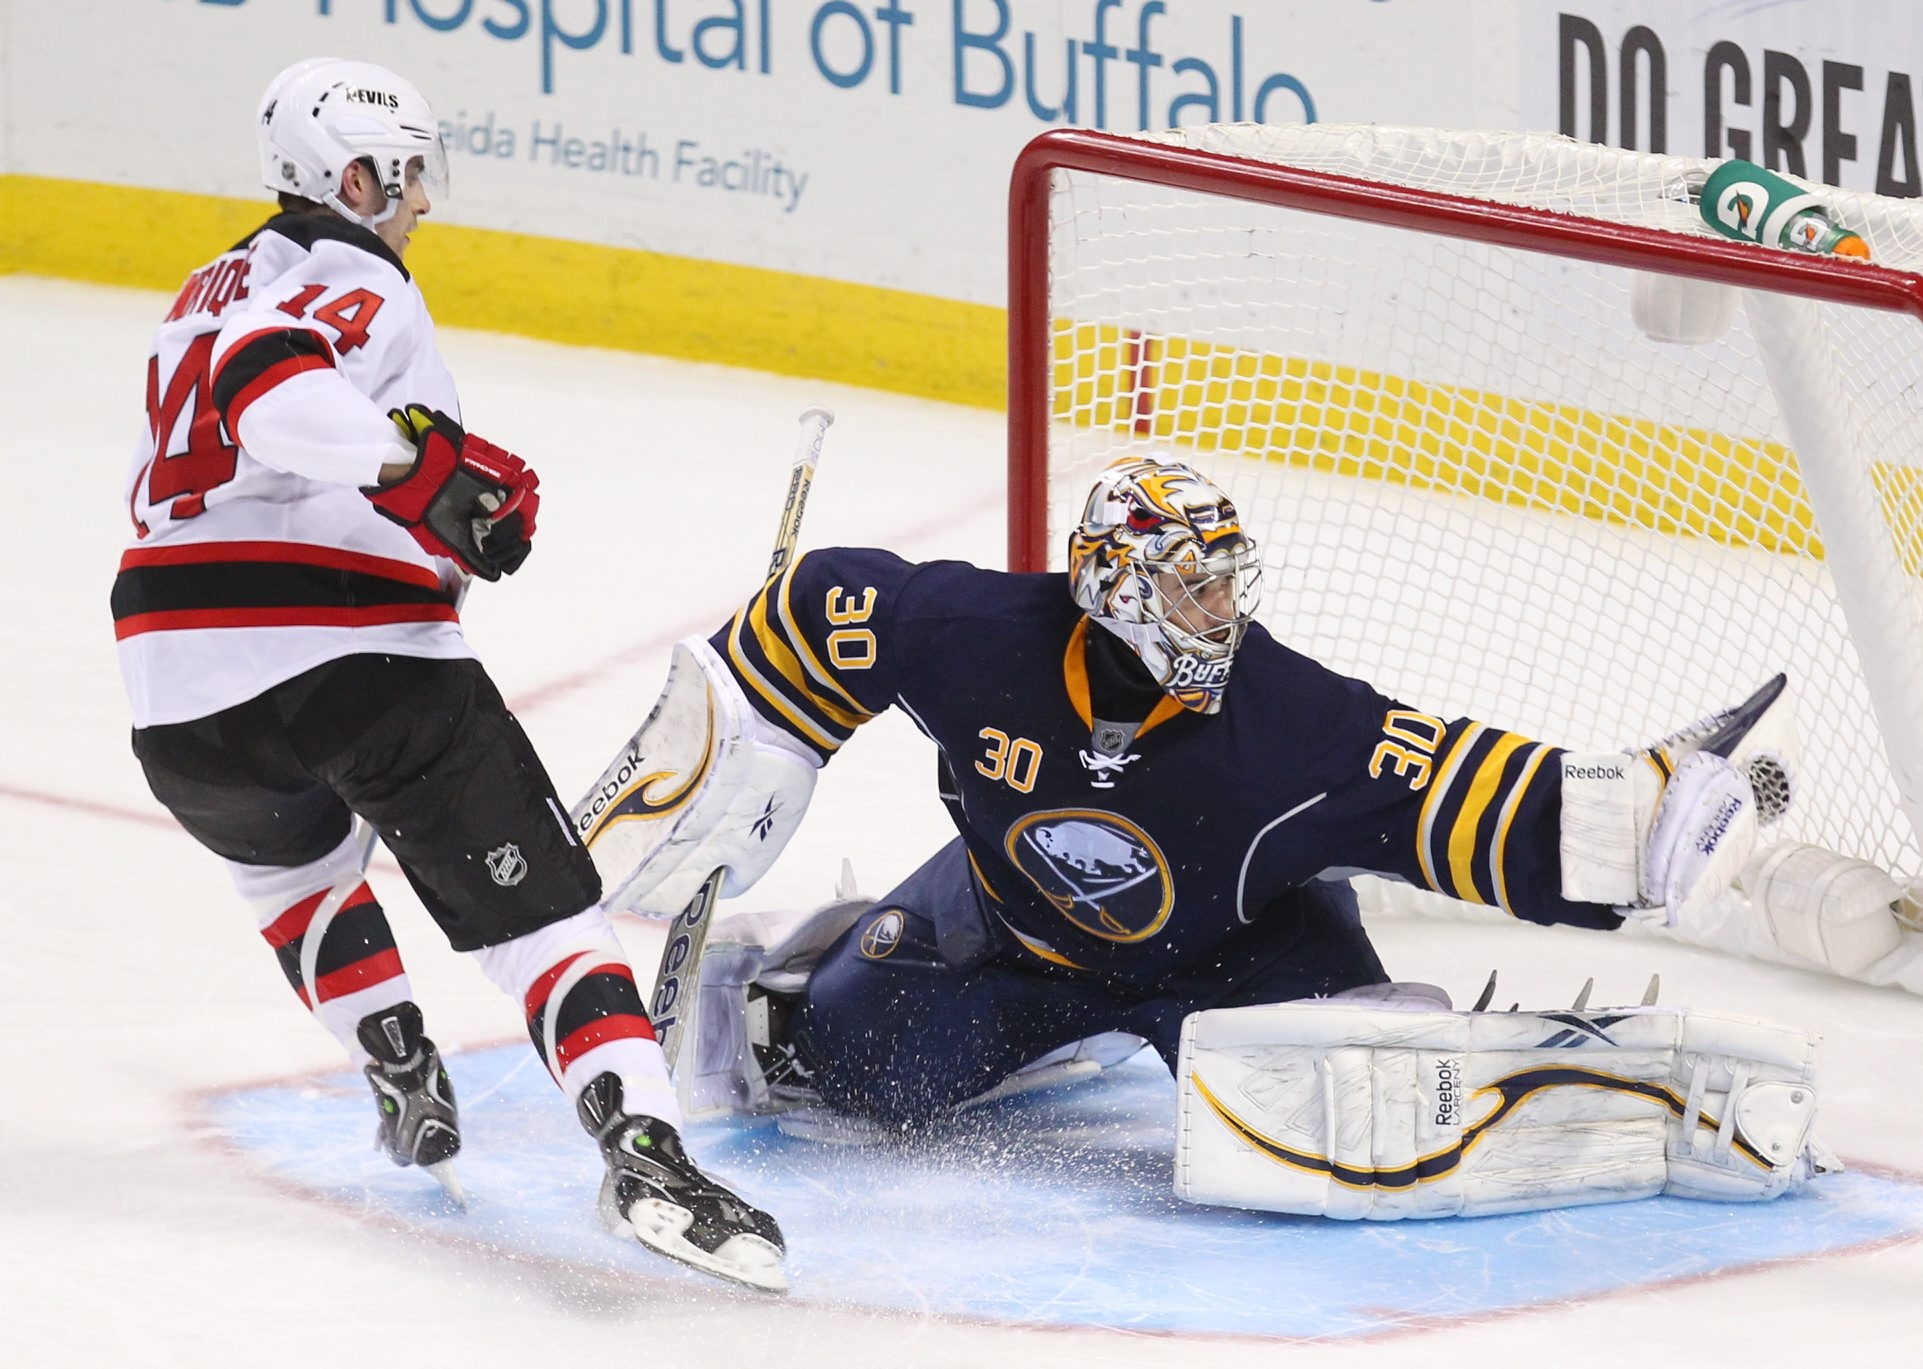 Ryan Miller has posted a .948 save percentage in his last three games.